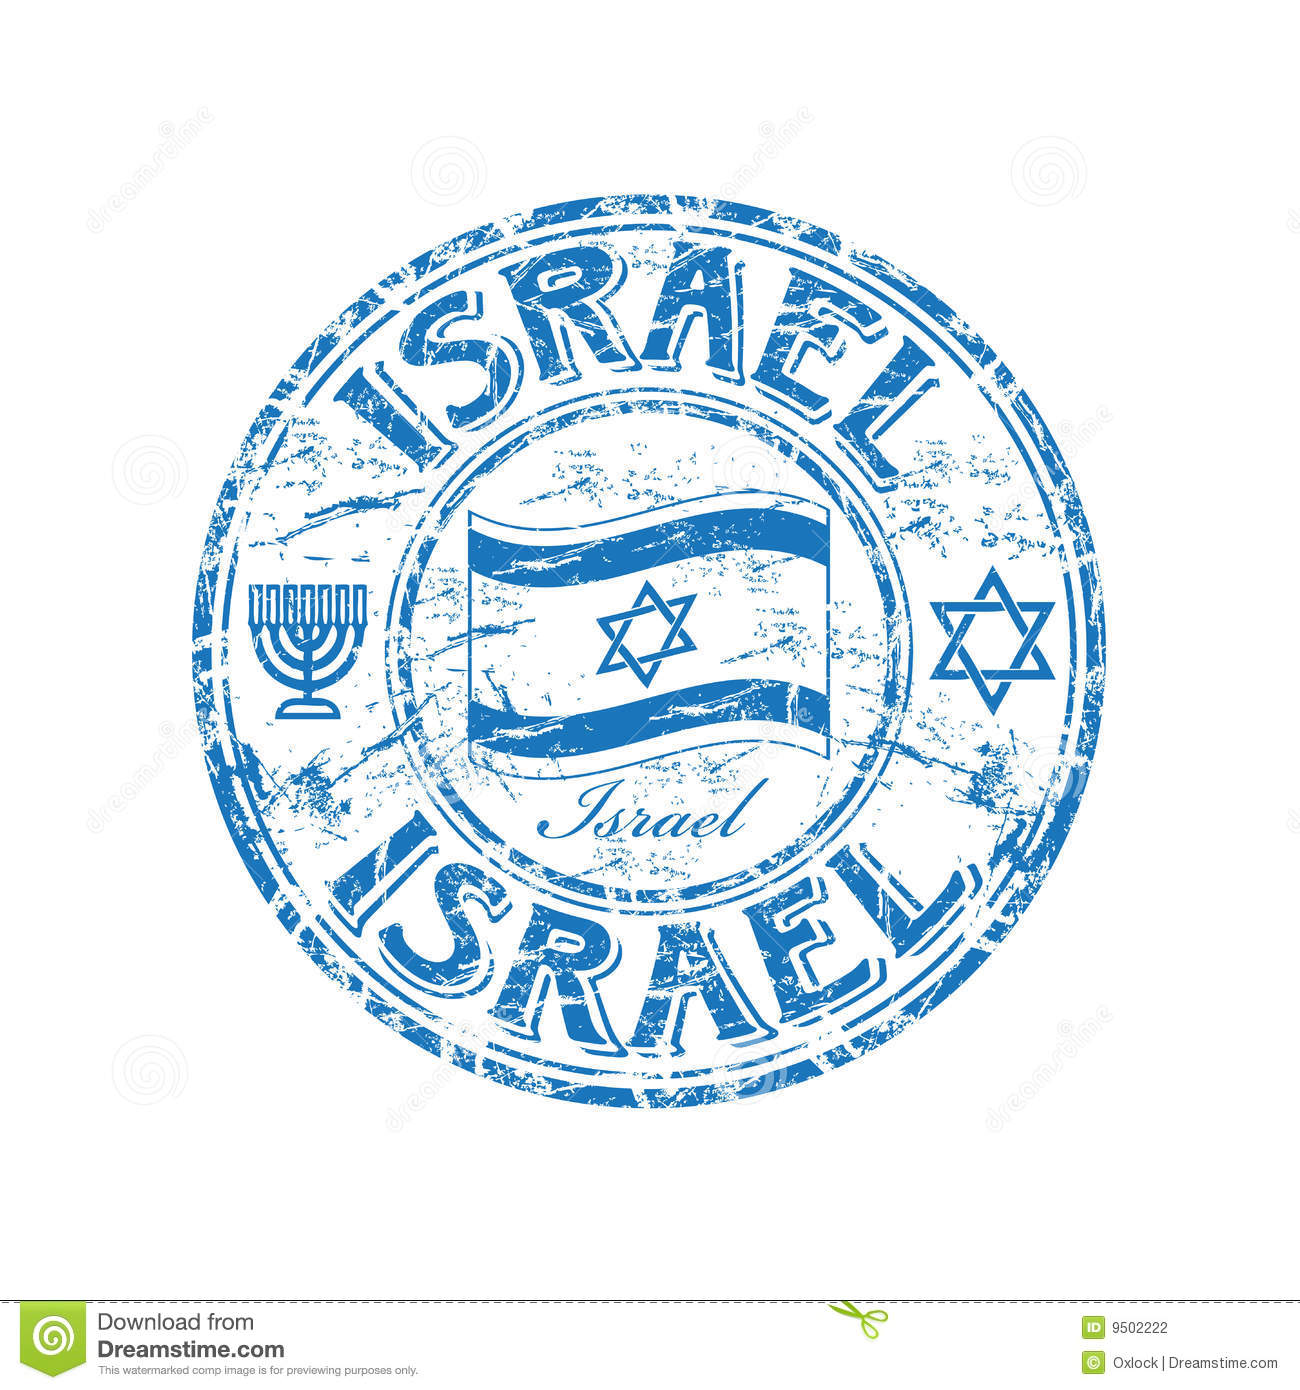 israel rubber stamp stock photography image 9502222 clip art of earth from moon clip art of earth from moon